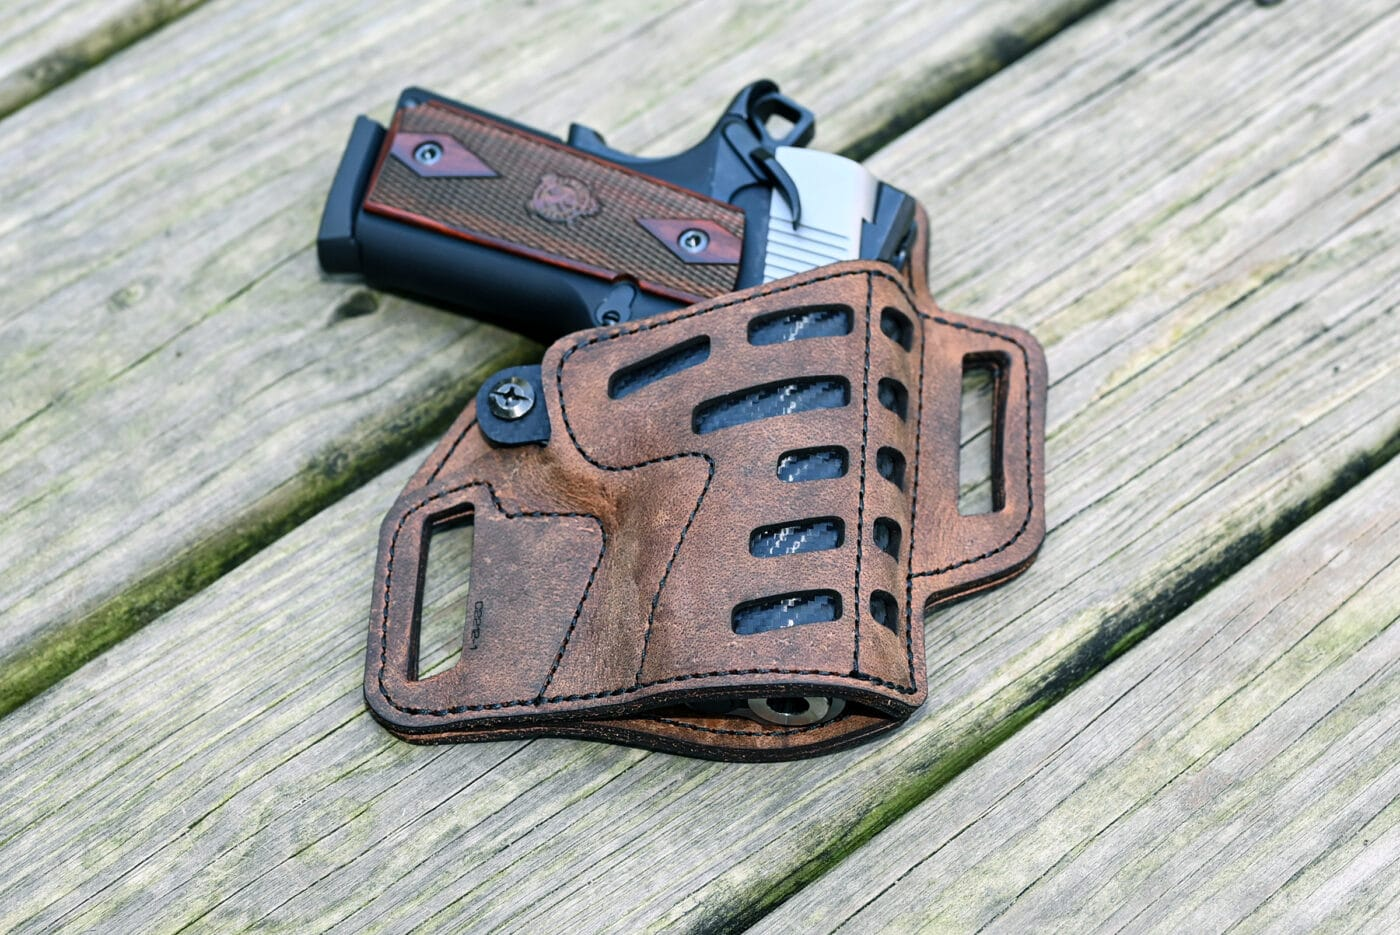 Versacarry holster with EMP pistol in it